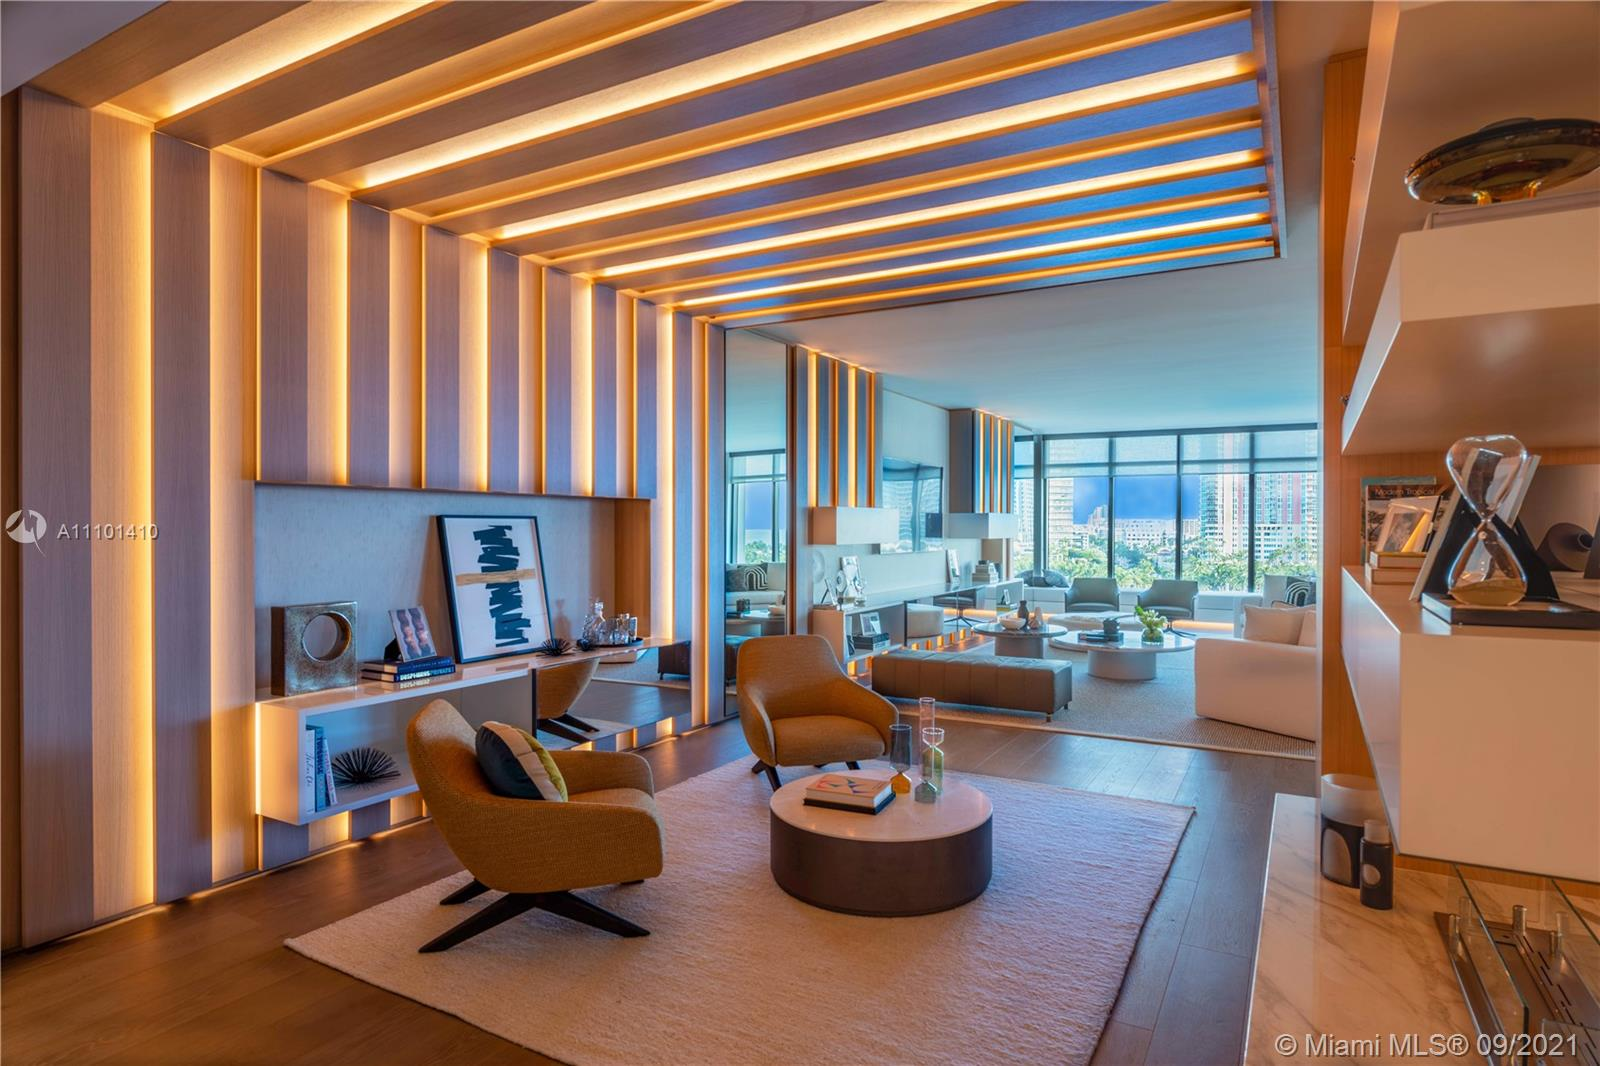 7000 Fisher Island Dr, Unit #7084 Luxury Real Estate